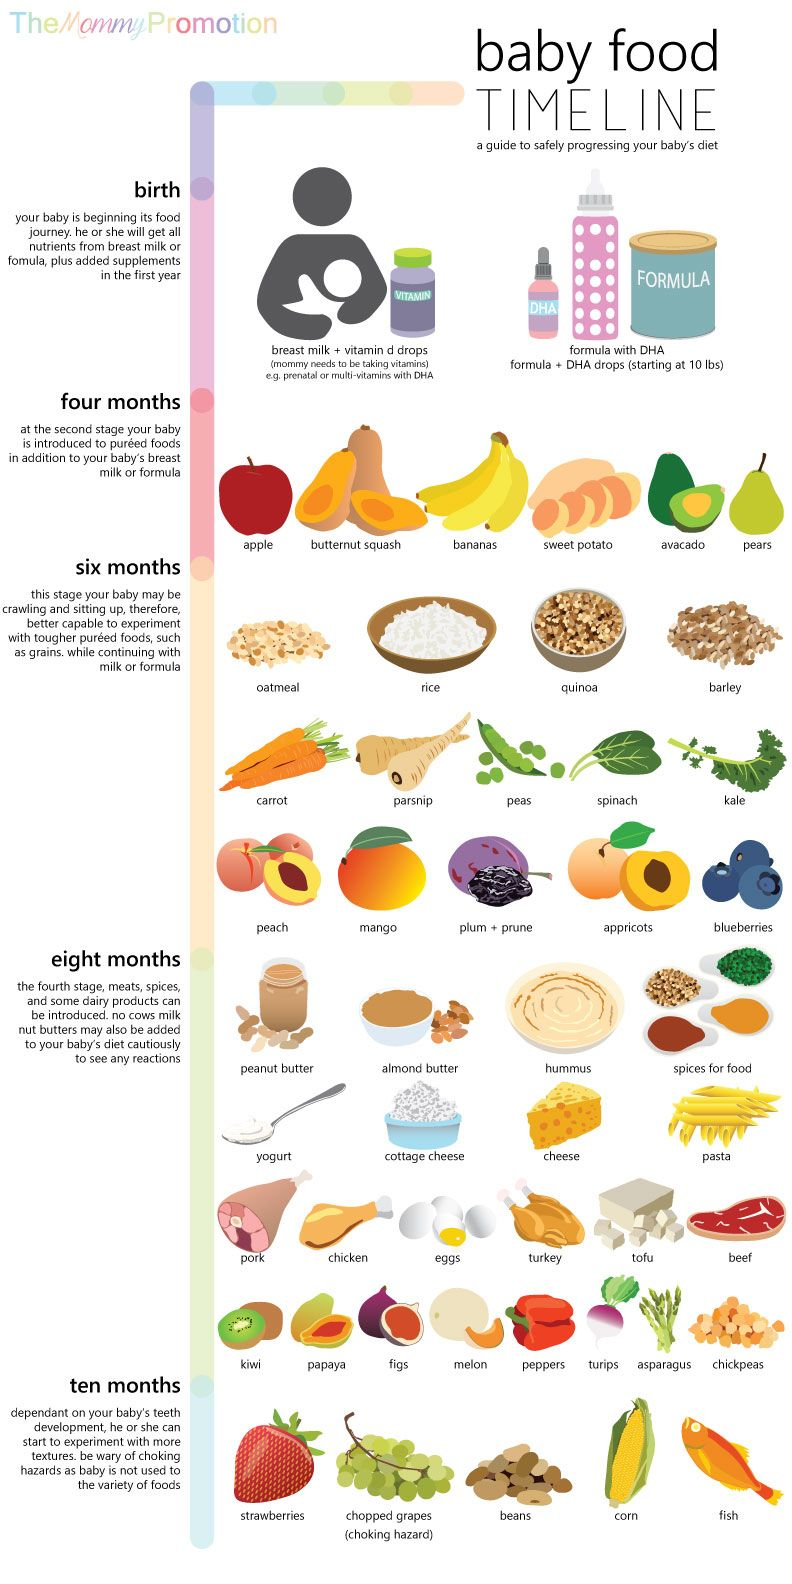 Baby Food Timeline Allowed Foods for Baby, Birth to 10